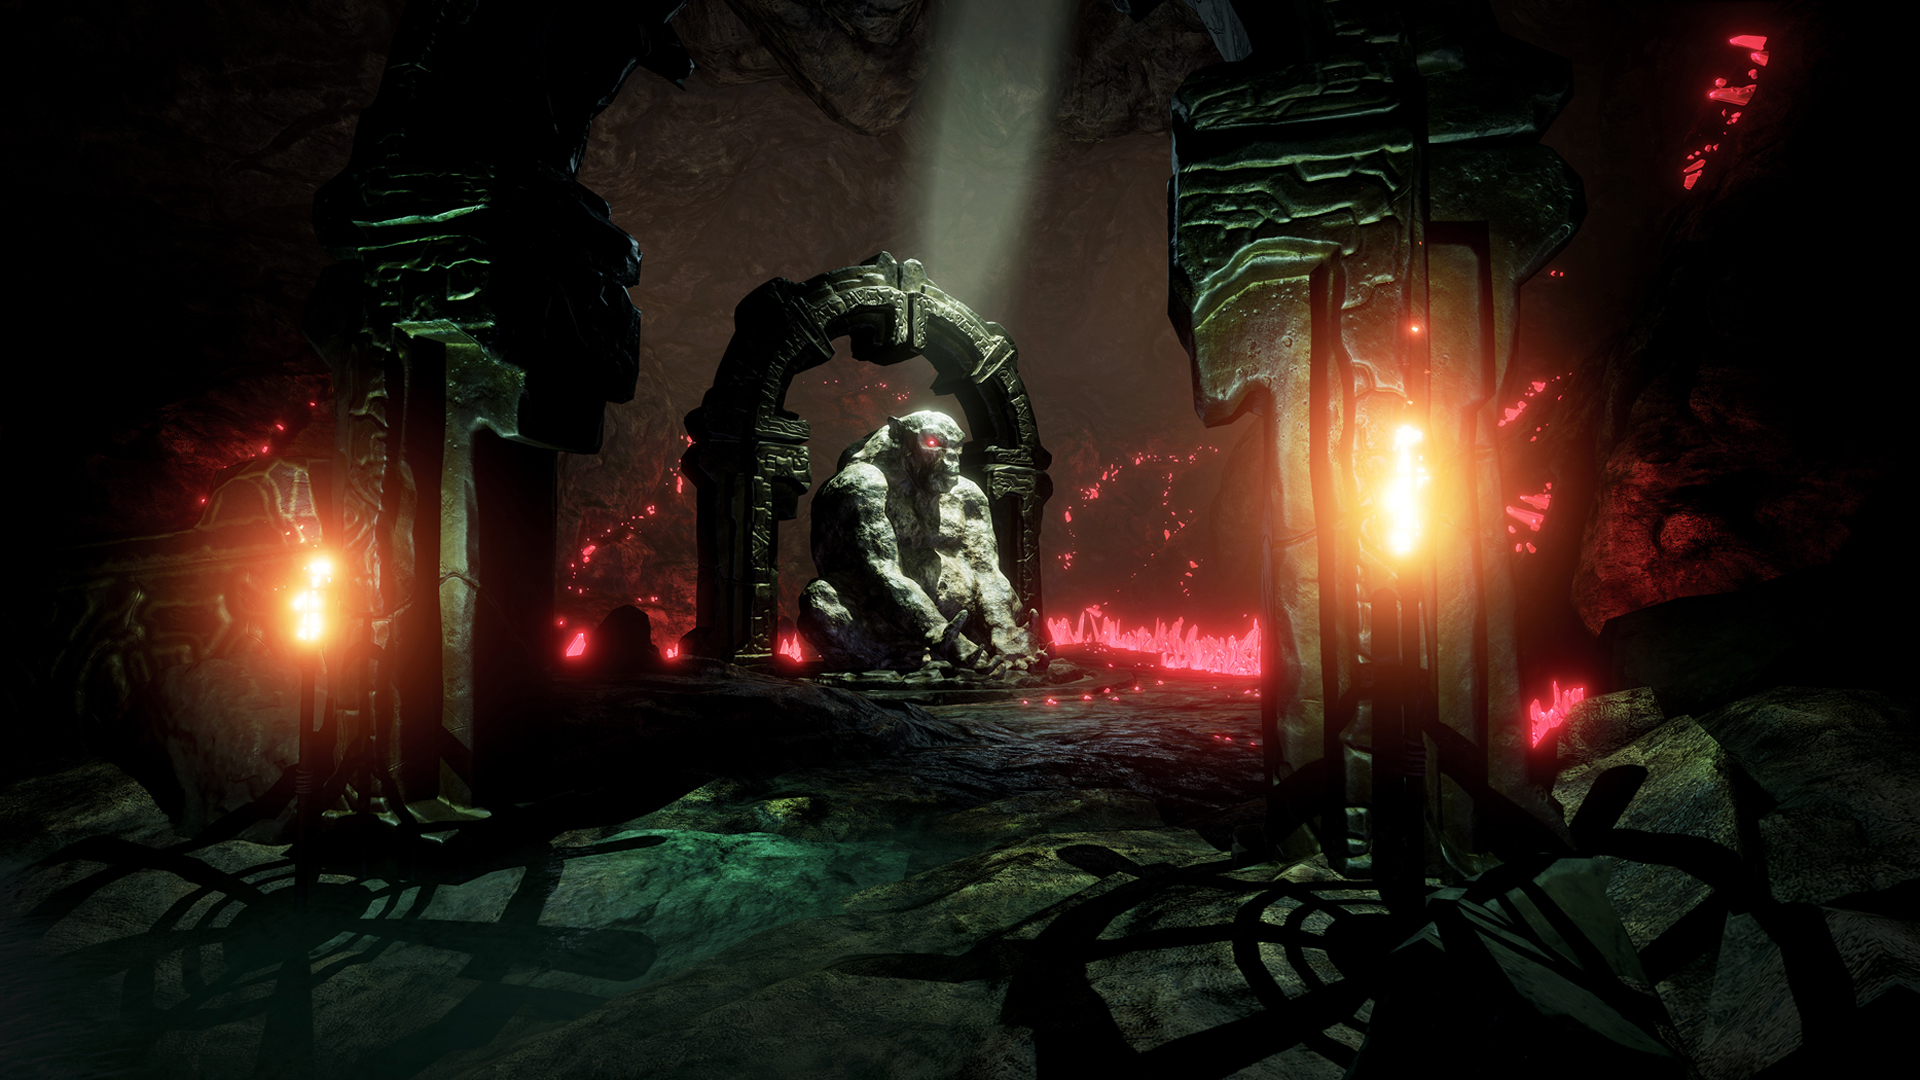 Conan Exiles gameplay footage of a stone statue in underground cave